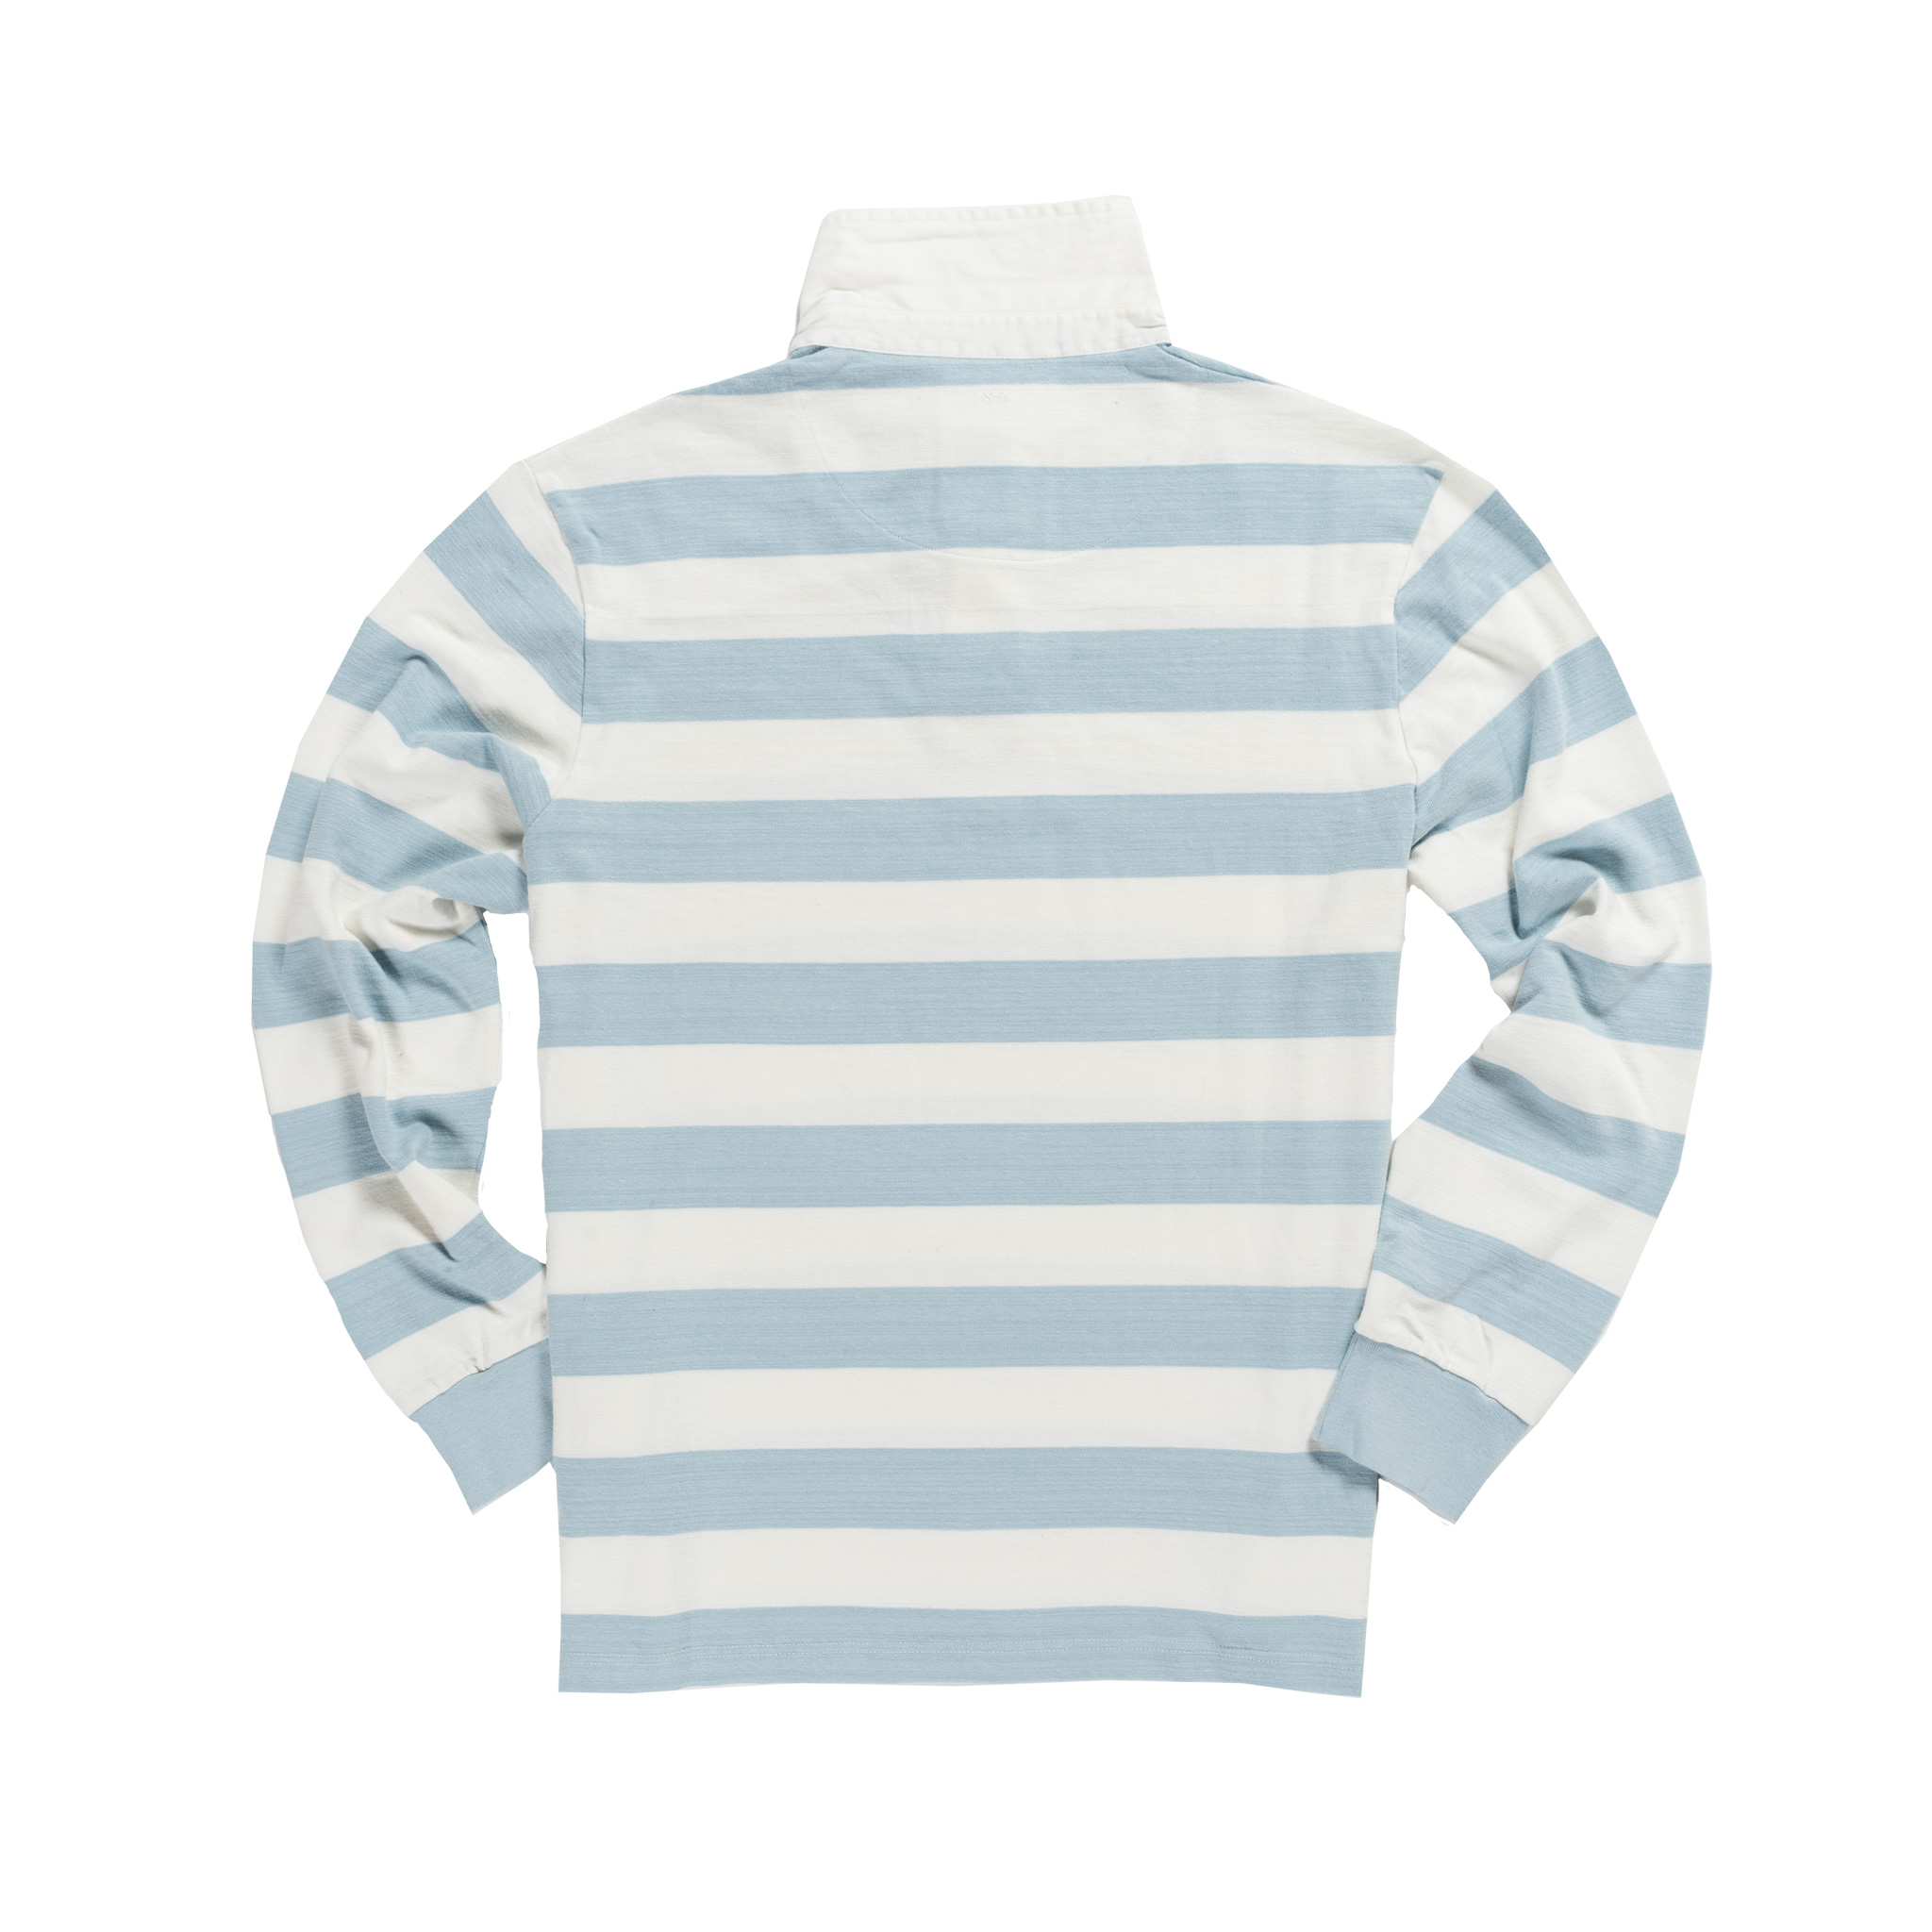 Classic Sky Blue and White 1871 Vintage Rugby Shirt